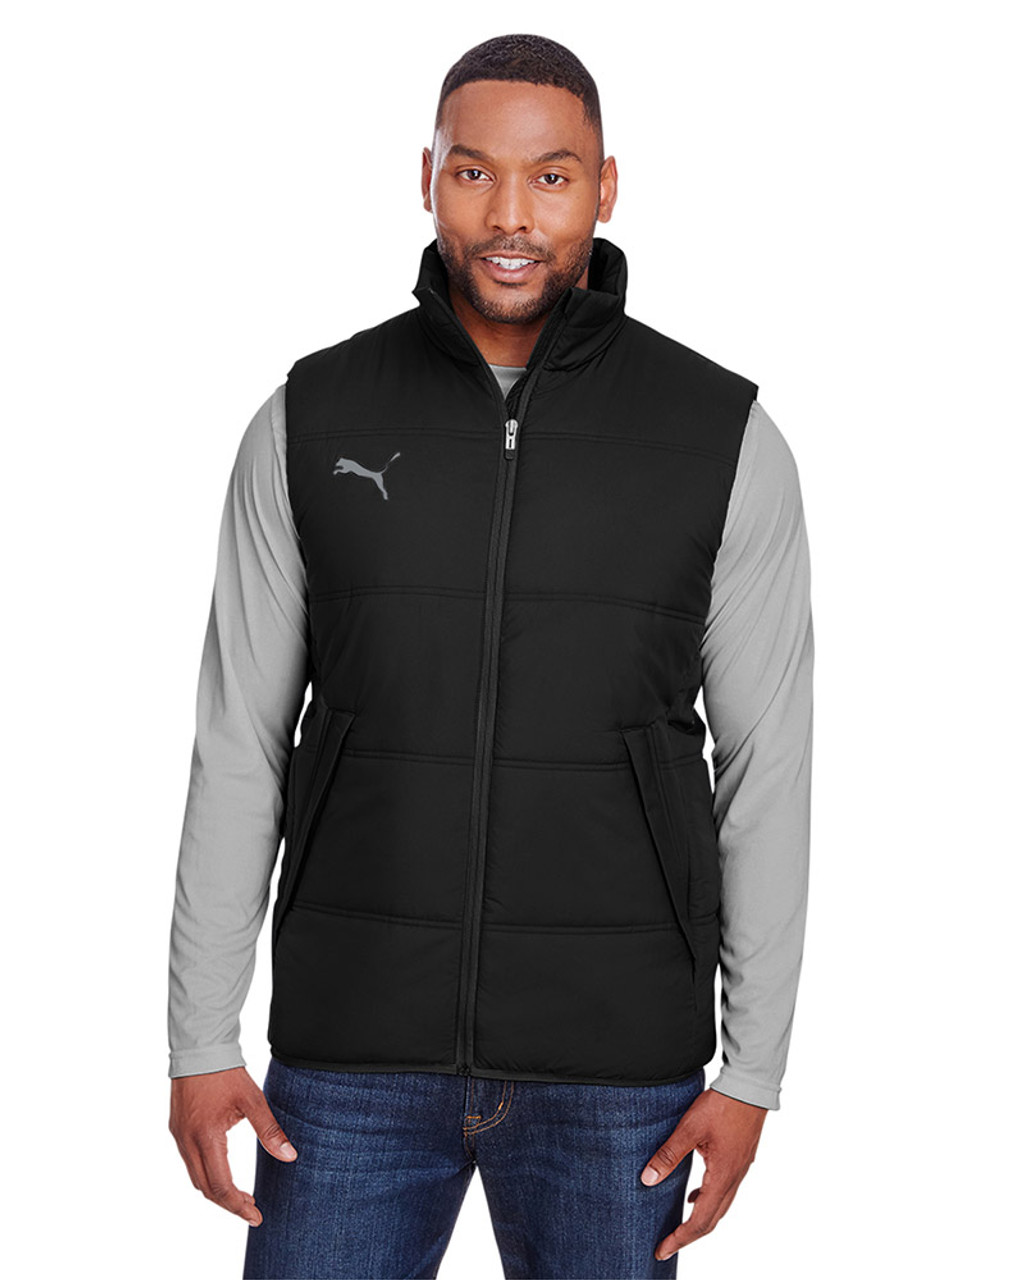 Puma Black/Quiet Shade - 582007 Puma Sport Essential Adult Padded Vest | BlankClothing.ca